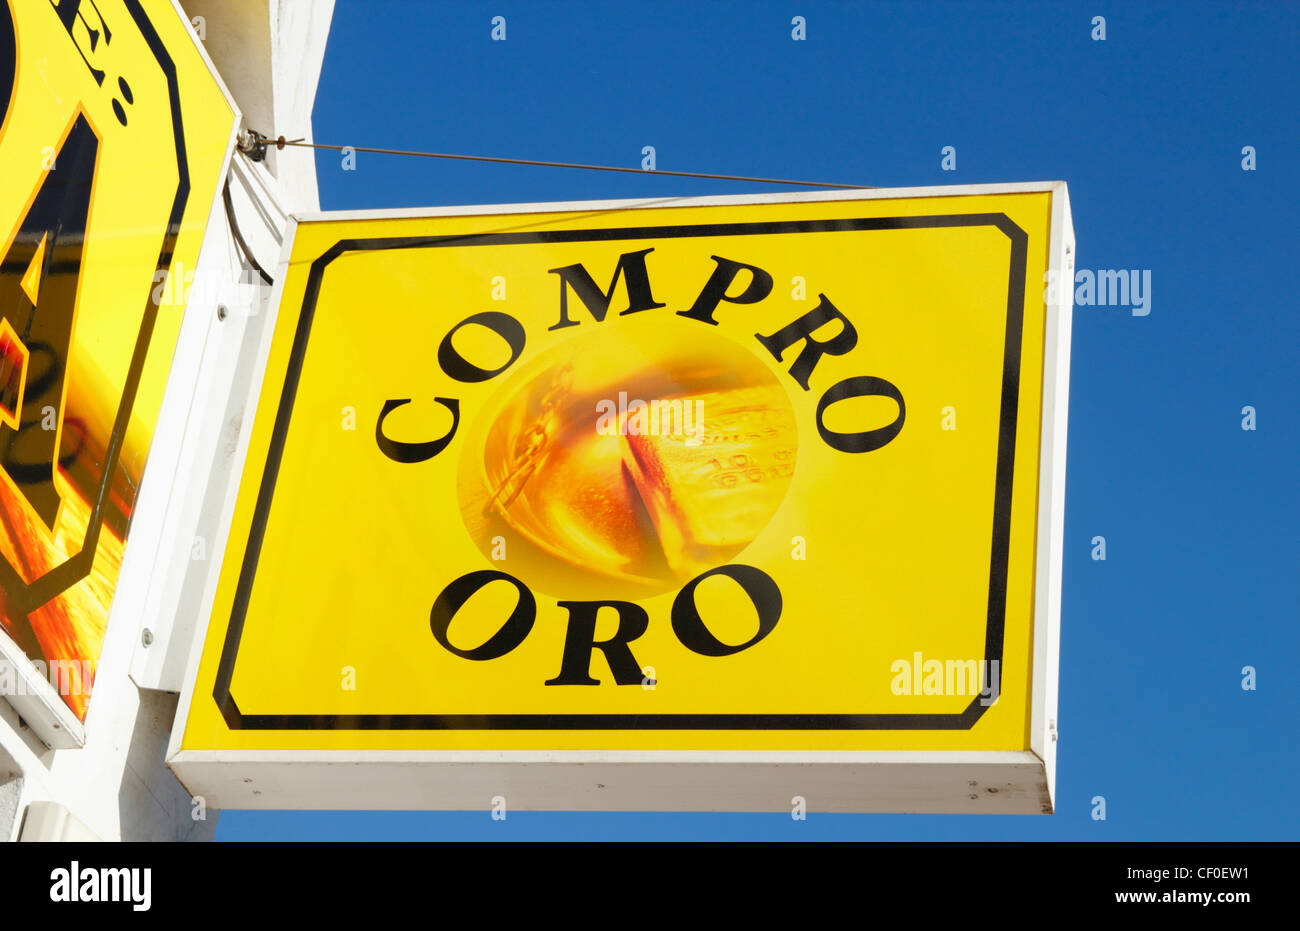 Compro Oro sign above shop in Spain - Stock Image